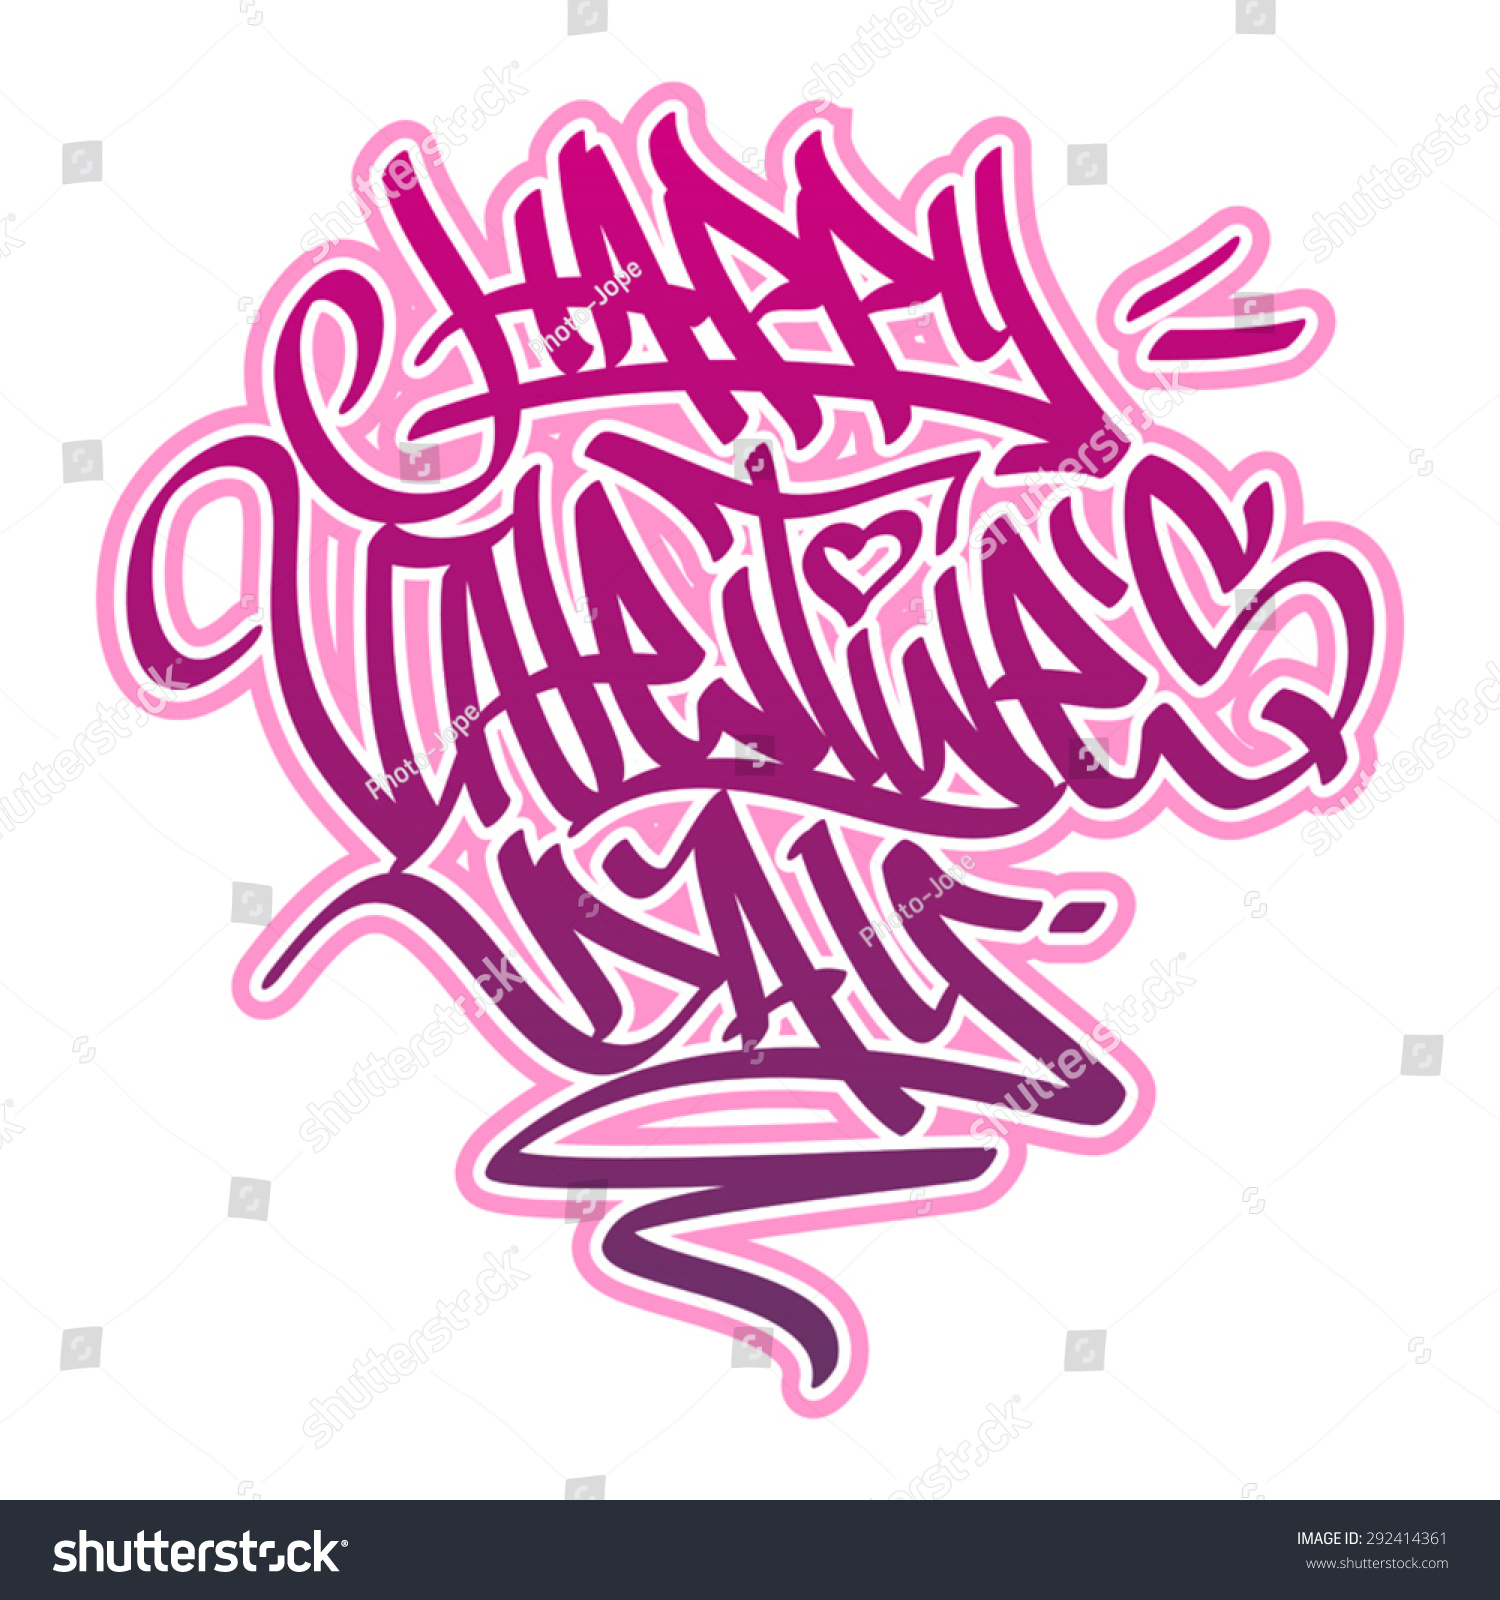 Happy Day Card Graffiti Style Pink Stock Vector (Royalty Free ...